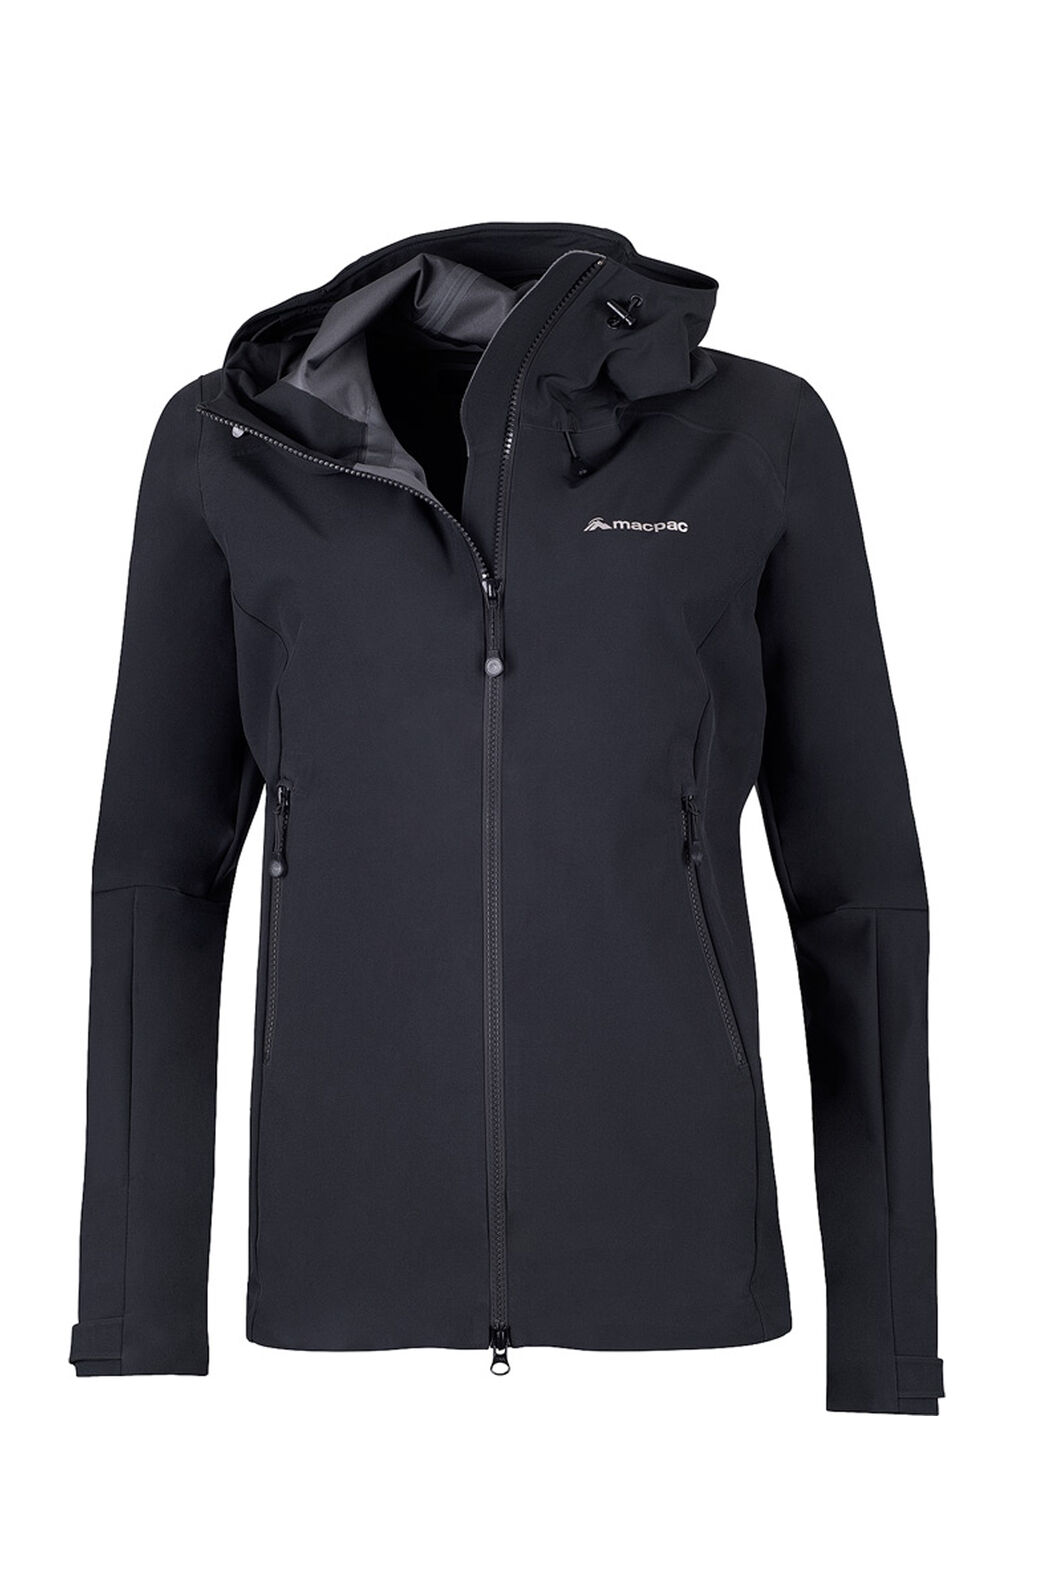 Macpac Fitzroy Alpine Series Softshell Jacket — Women's, Black, hi-res